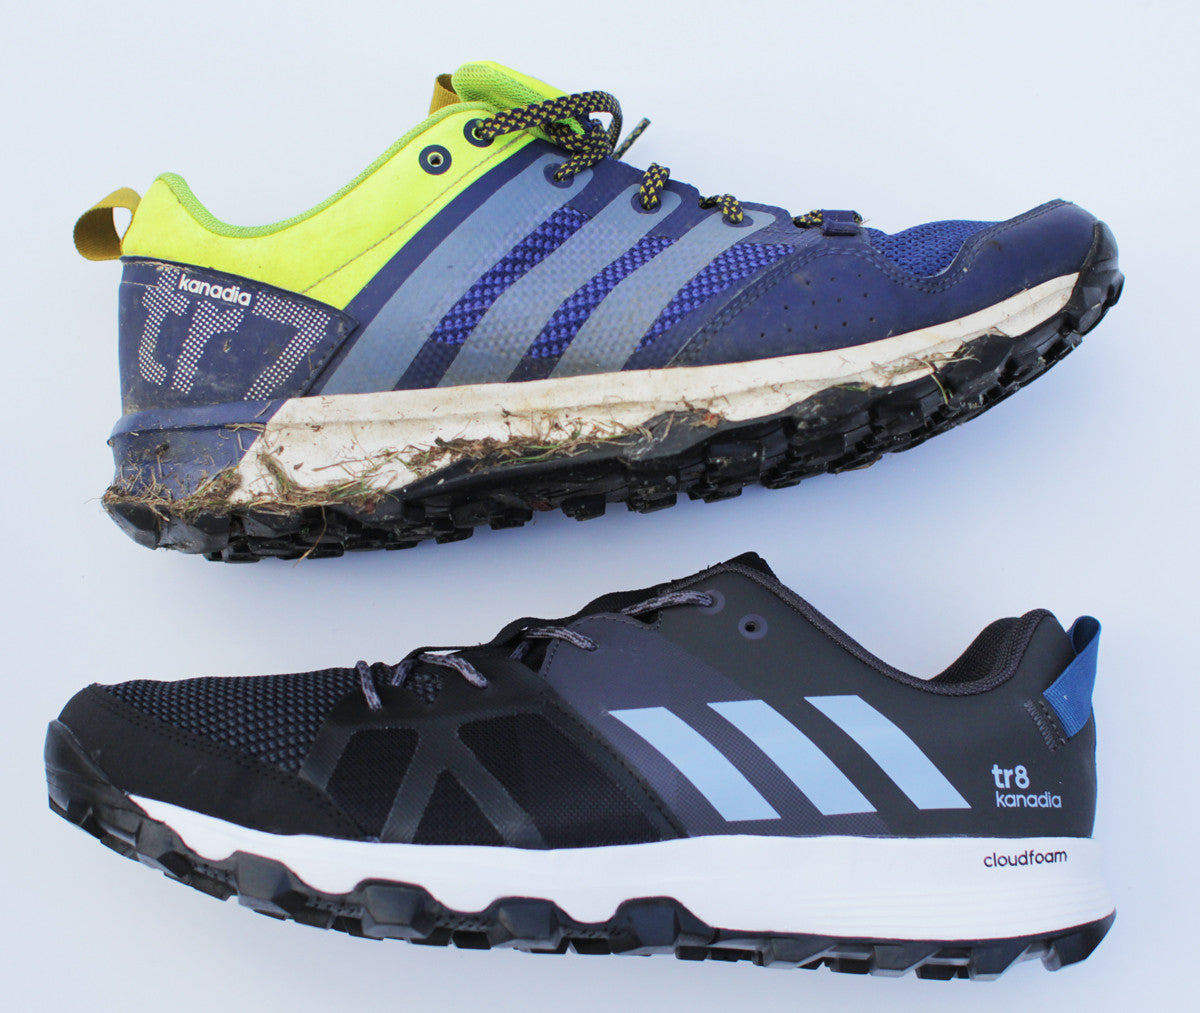 adidas Kanadia 7 and 8 side by side